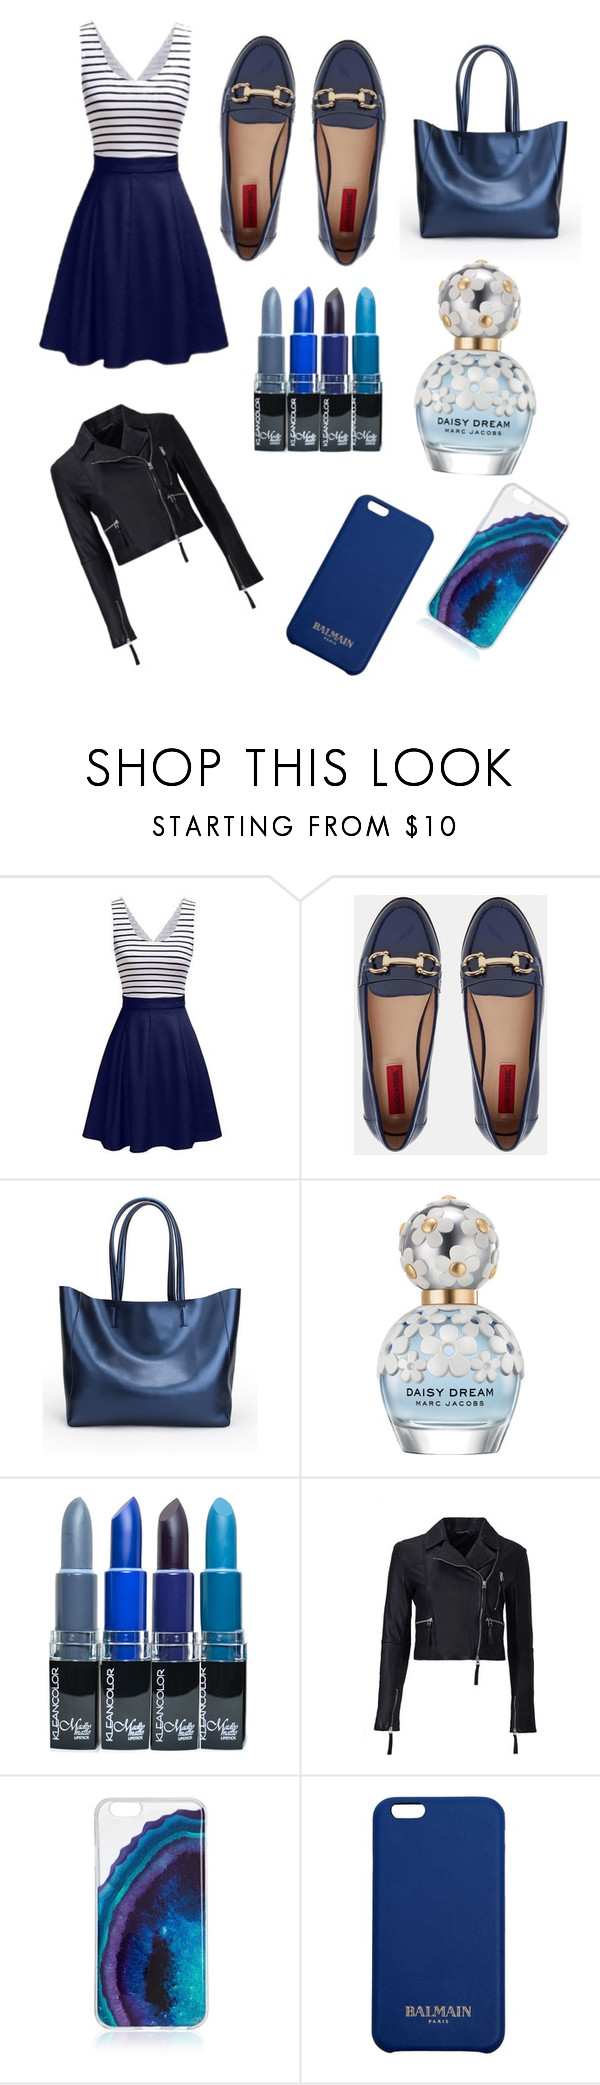 """blue summer"" by ellimae ❤ liked on Polyvore featuring London Rebel, Marc Jacobs, Marissa Webb and Balmain"